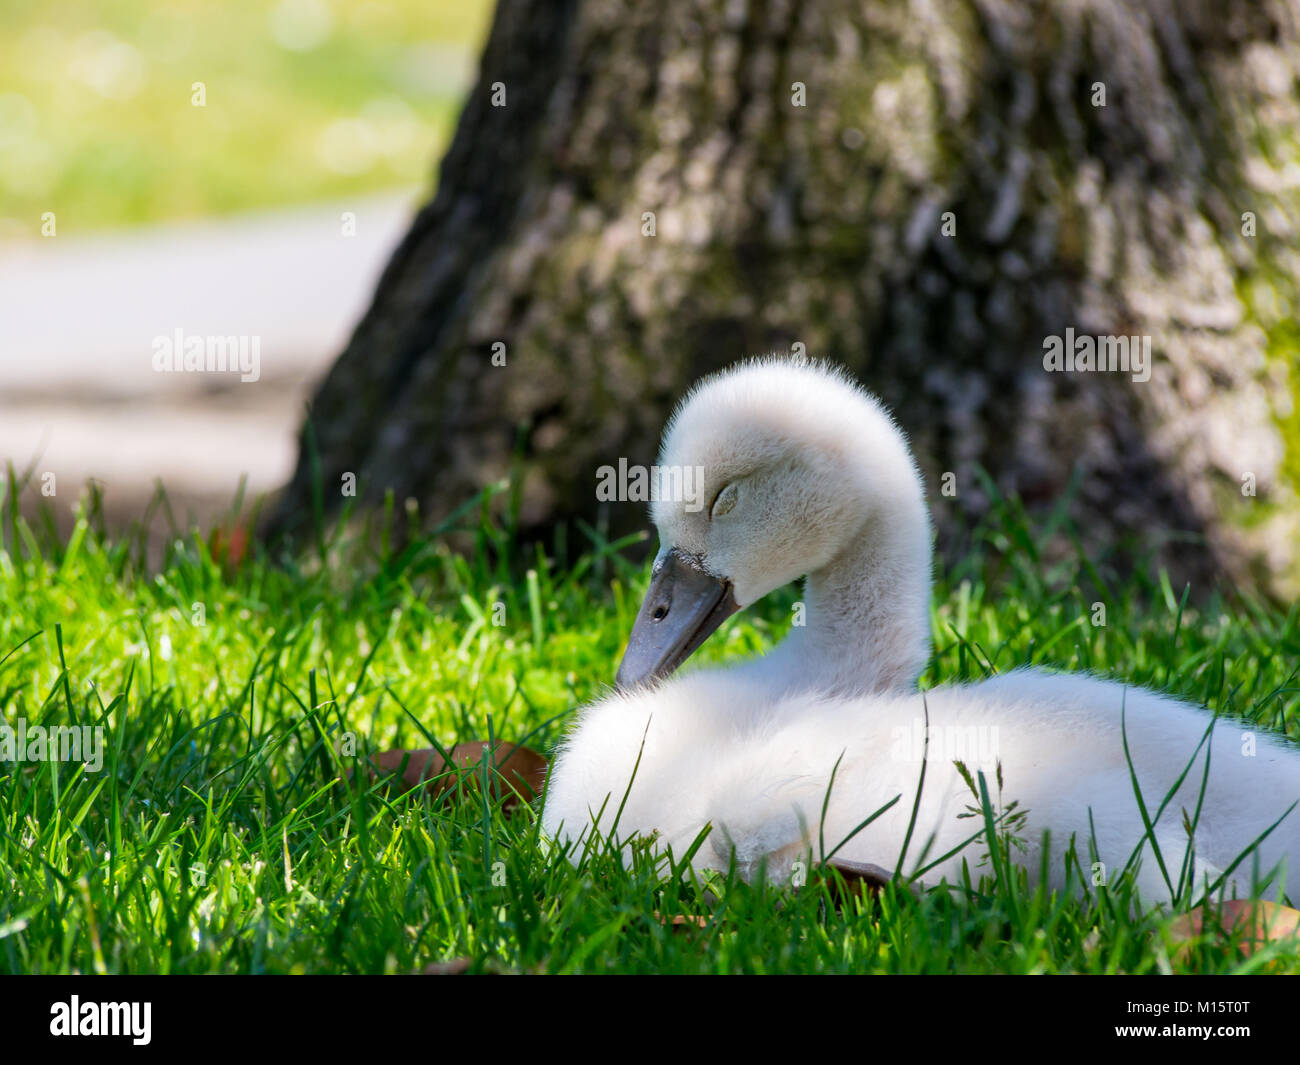 Baby Swan Sleeping in Green Grass Lawn Stock Photo